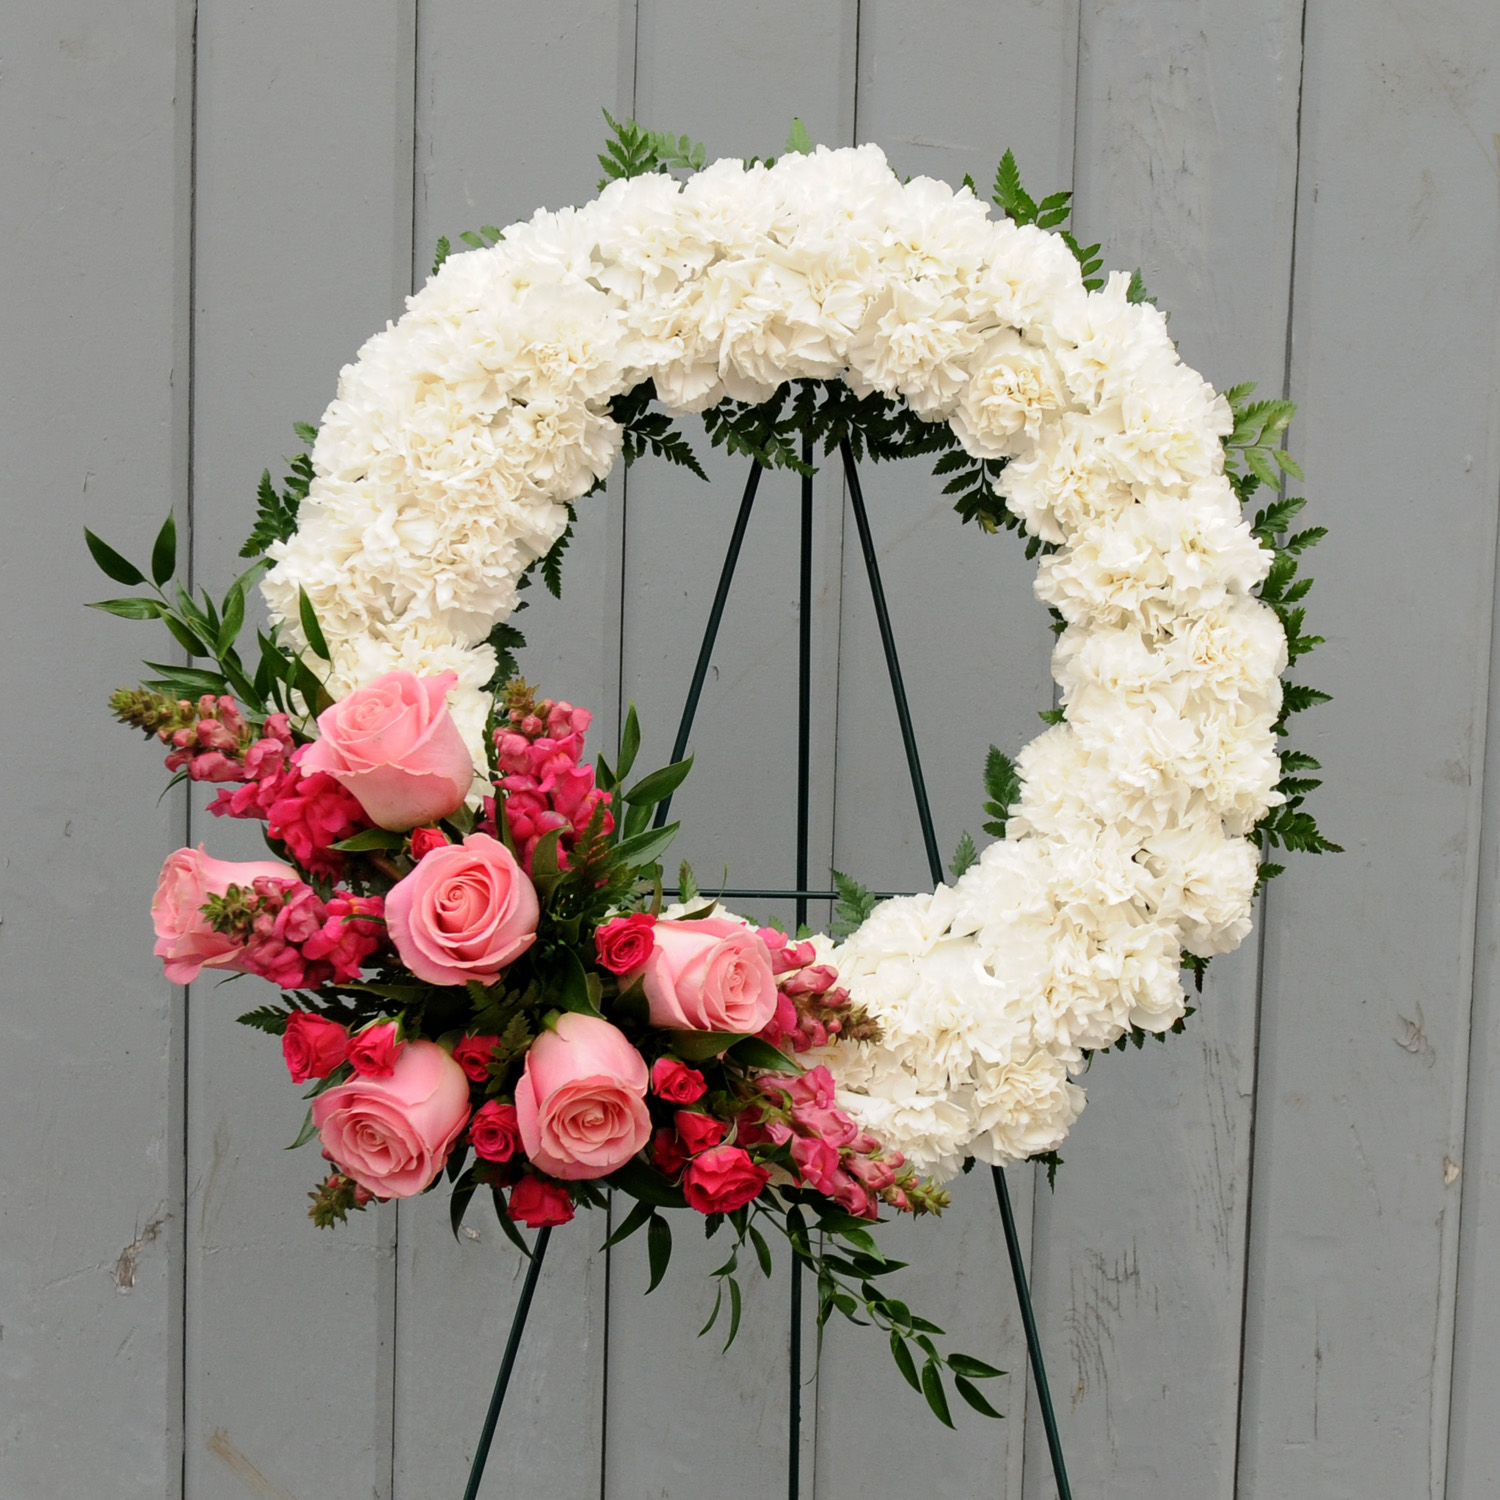 White Carnation Wreath With Floral Accent Floral Sunshine